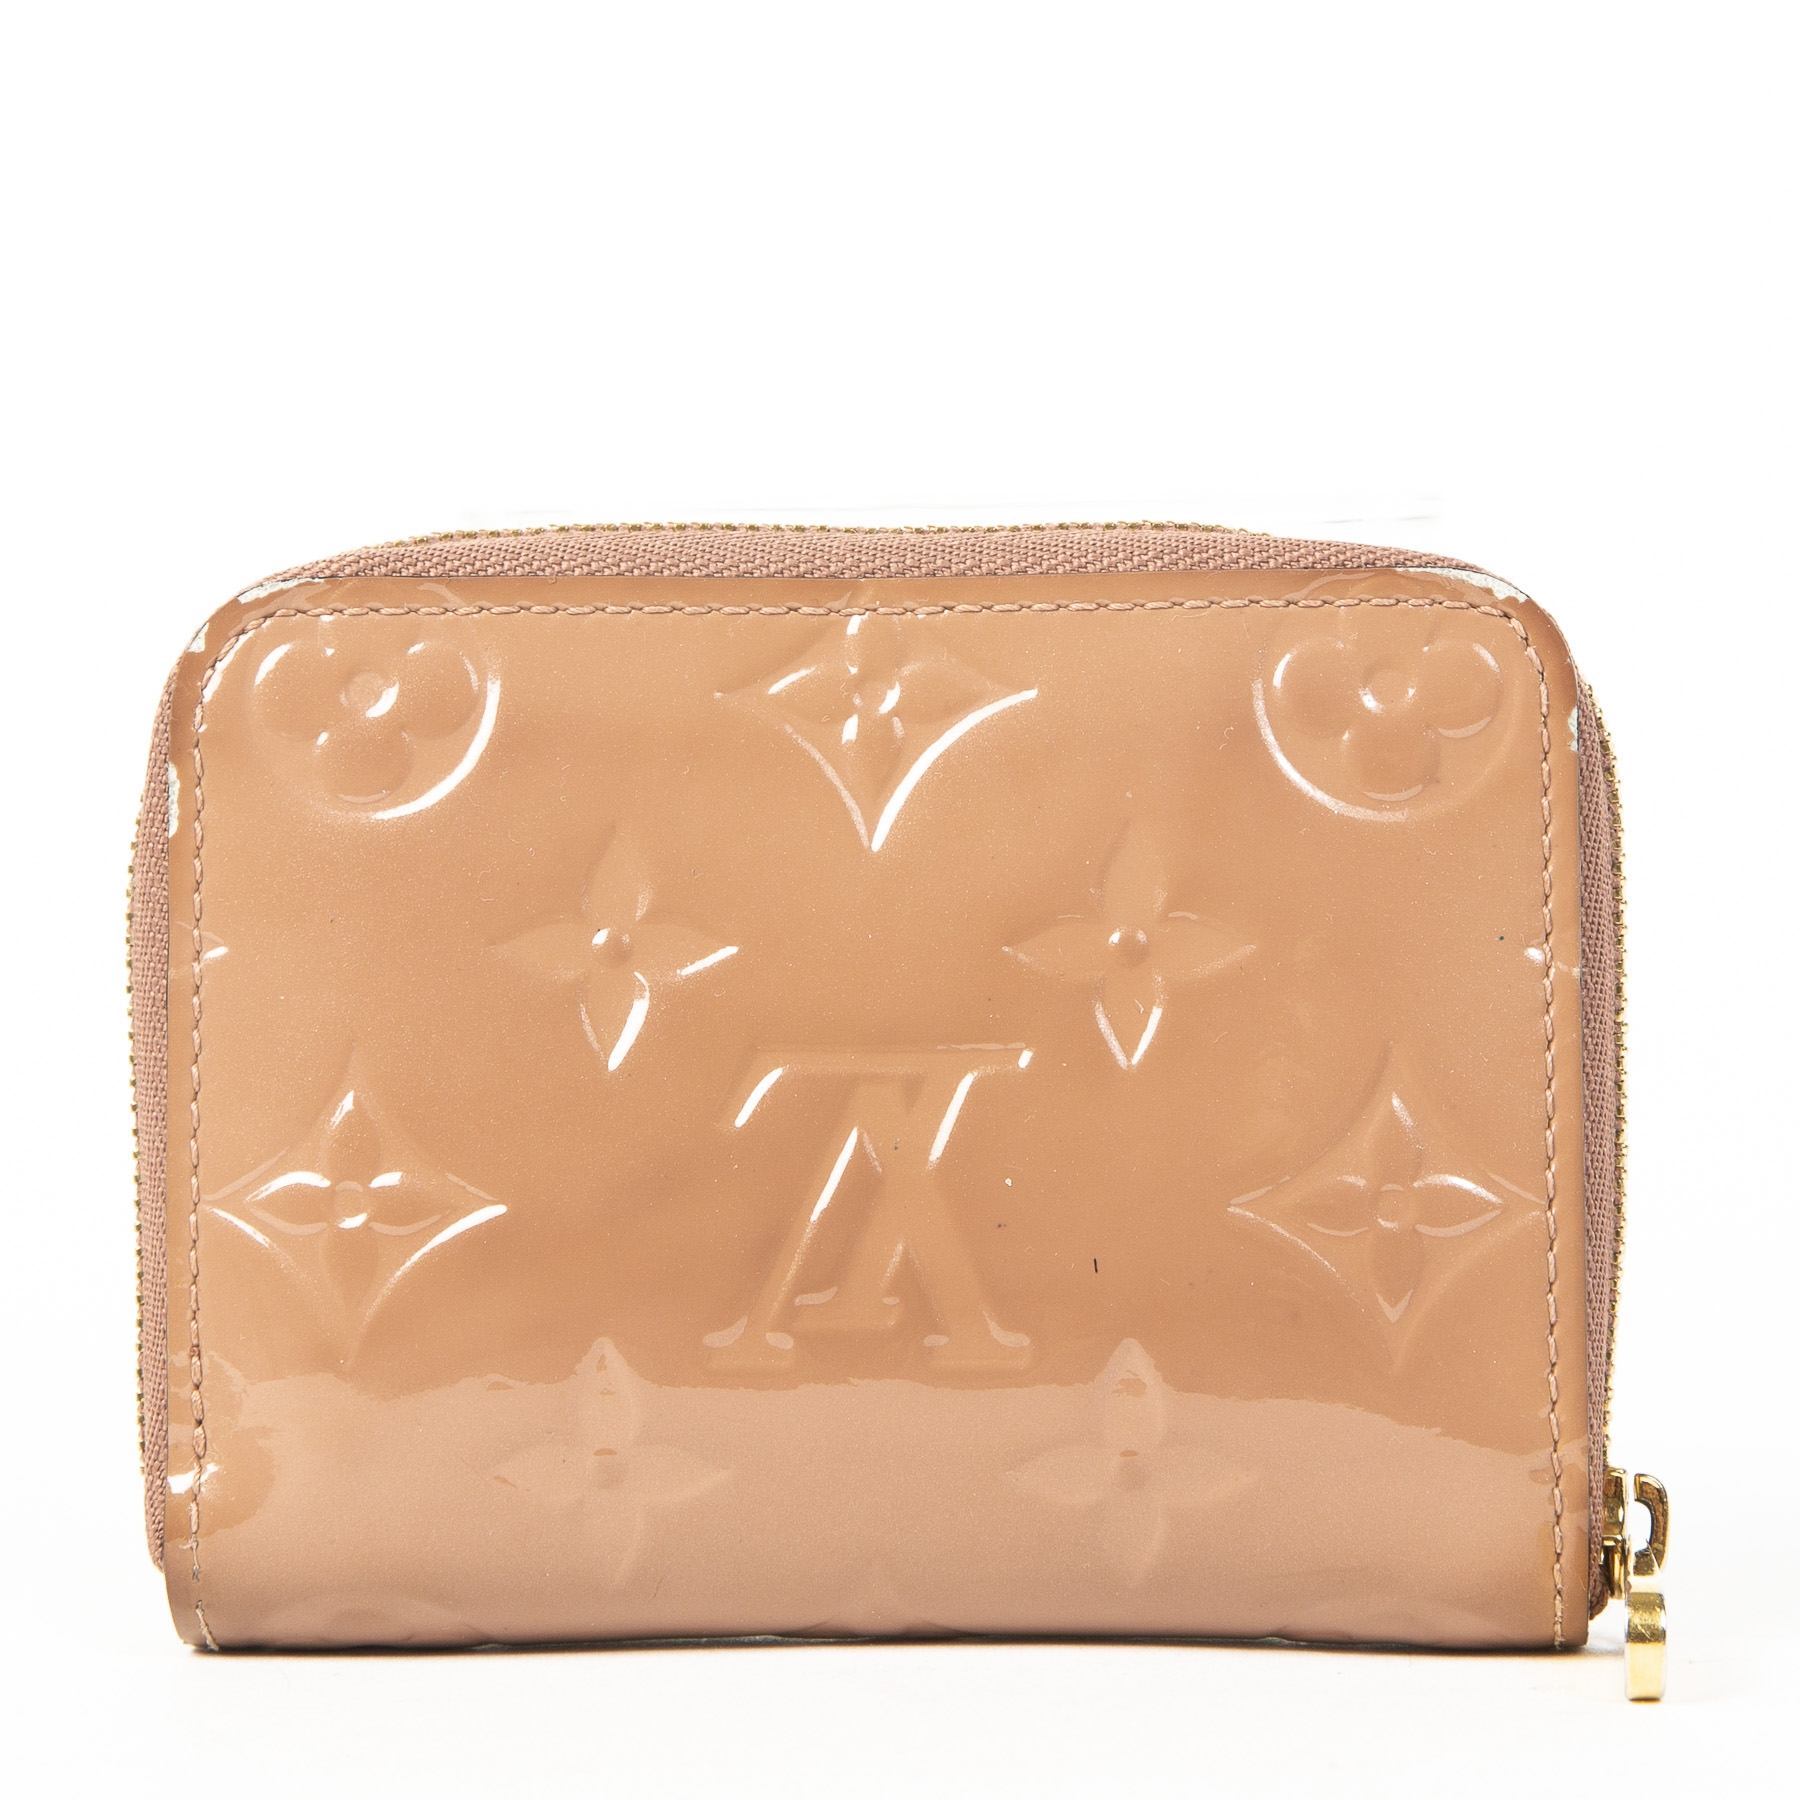 Louis Vuitton Vernis Zippy Compact Wallet Vieux Rose